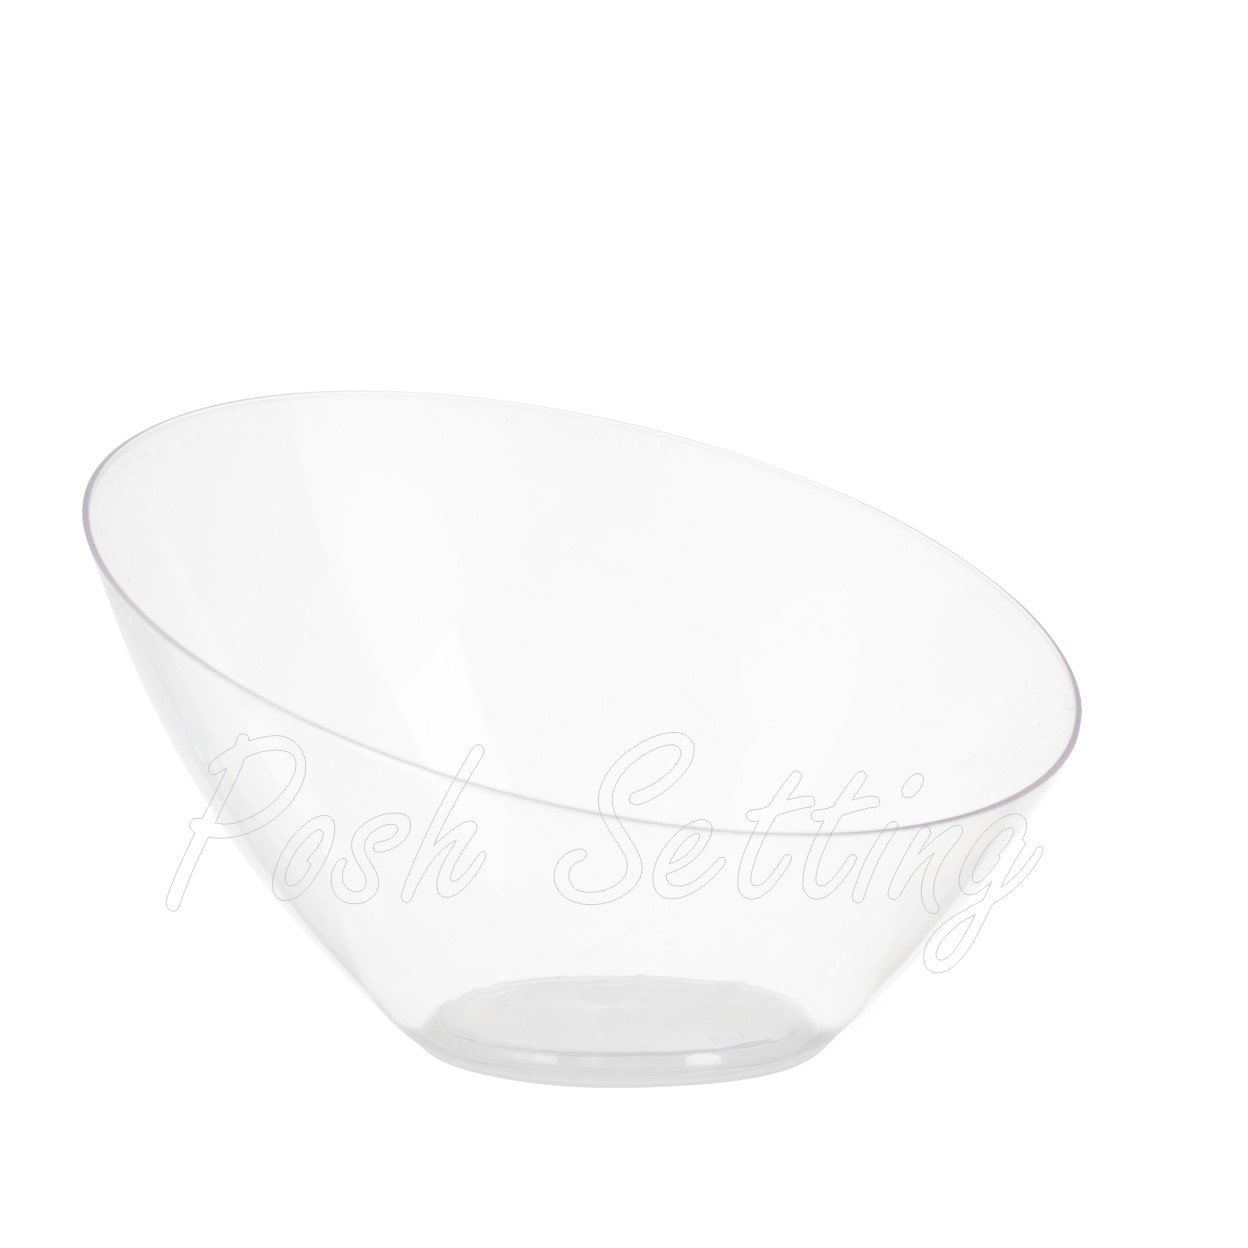 Clear Small Candy Bowl for Weddings, Buffet, Offices, Disposable Hard Plastic Small Angled Bowls for Party's, Salads, Snacks and Fruit Bowl 5 Pack by Posh Setting